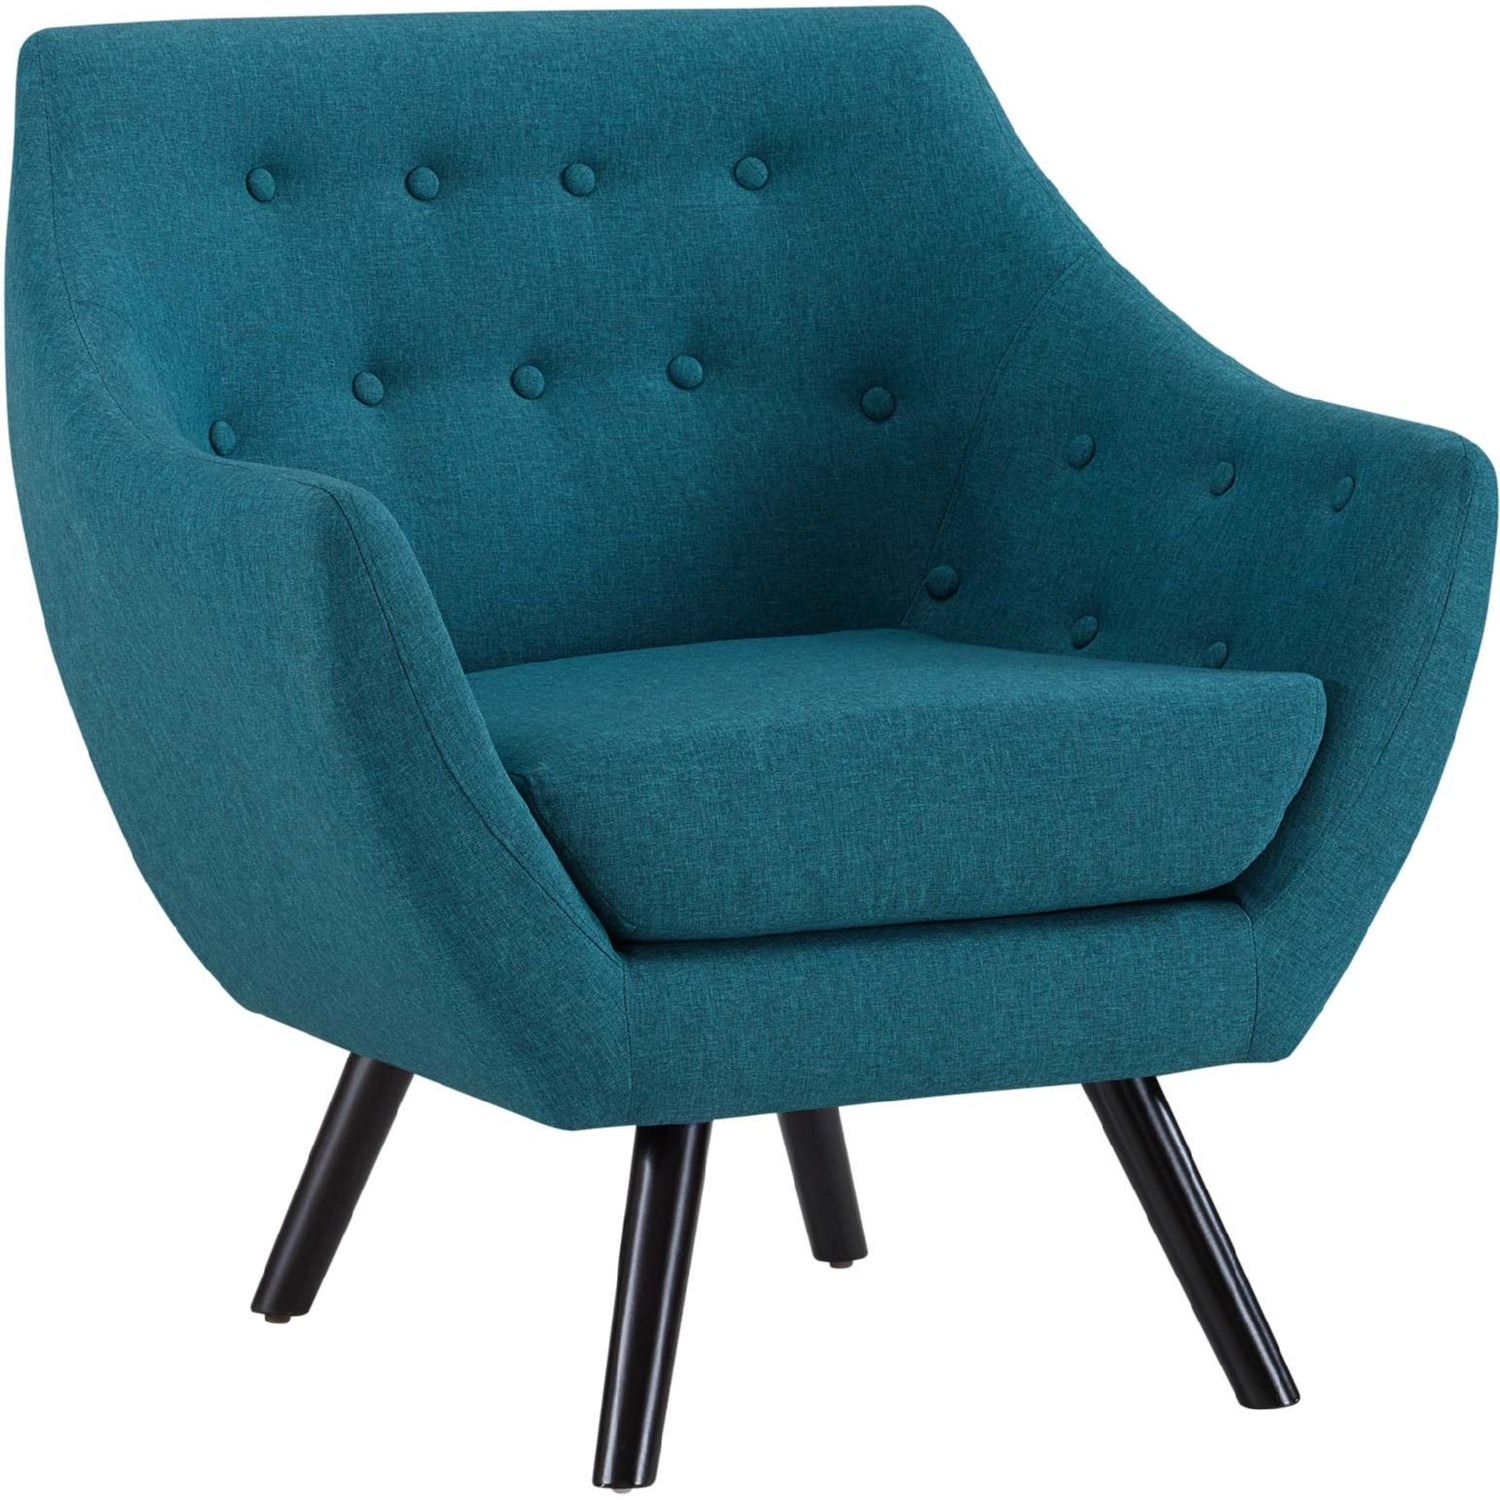 Armchair In Teal Fabric W/ Tufted Buttons - image-1